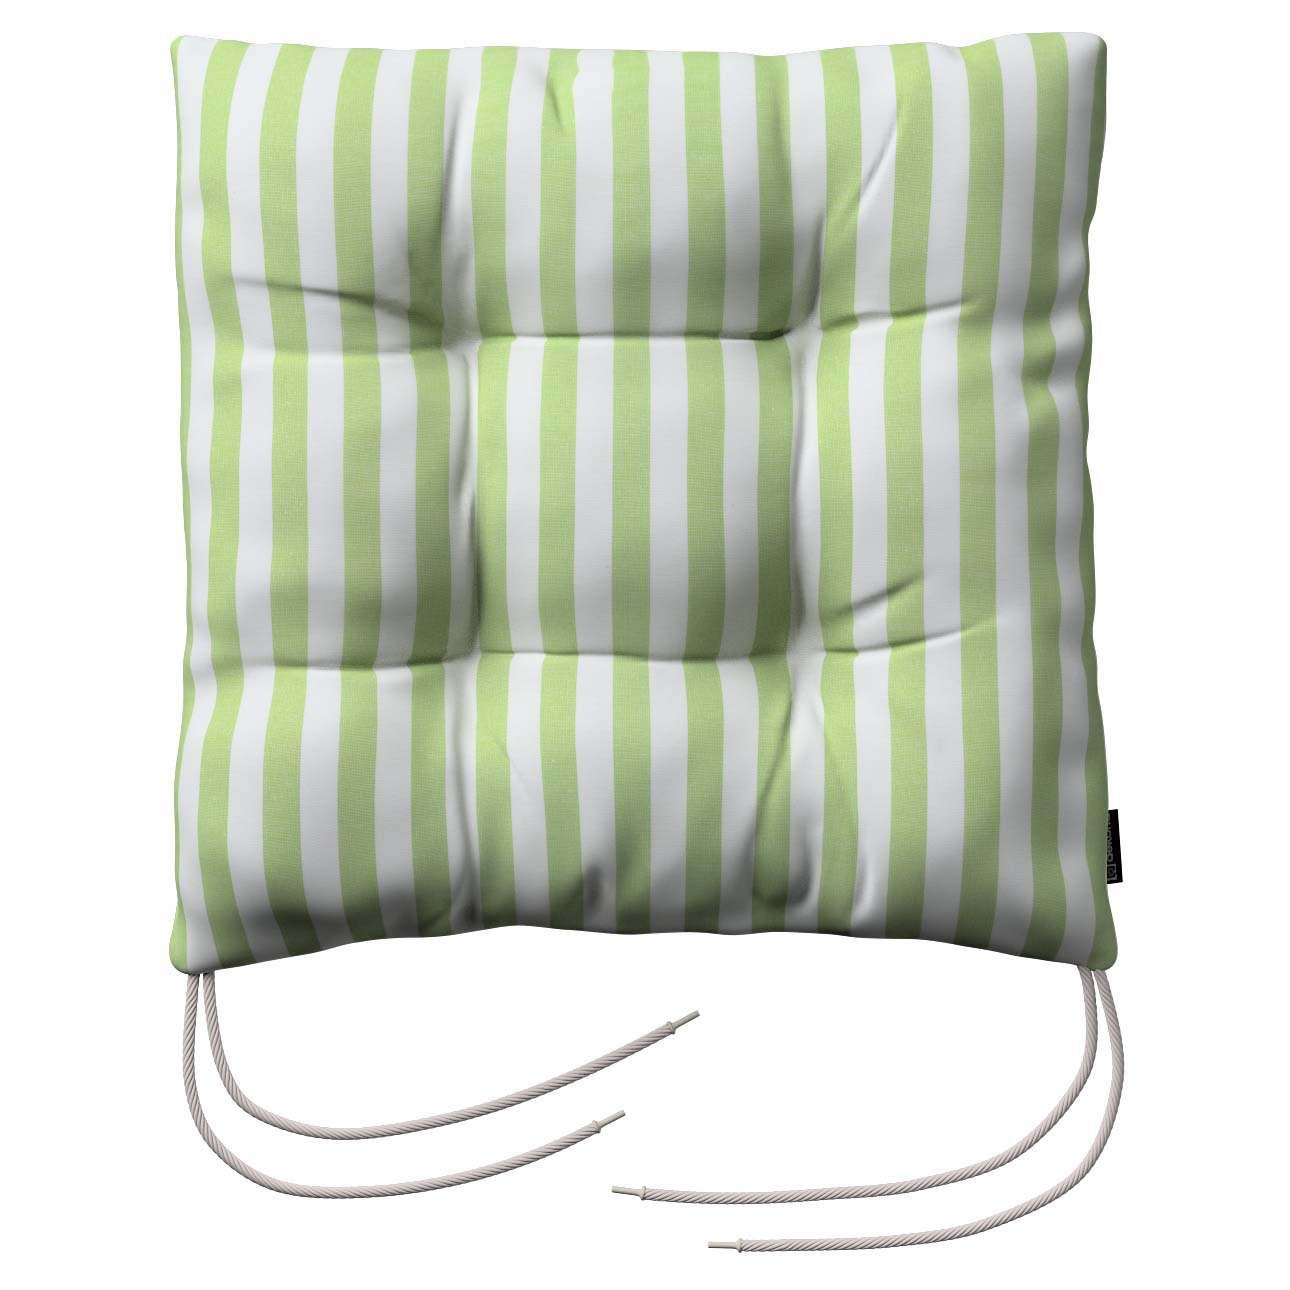 Jack seat pad with ties in collection Quadro, fabric: 136-35